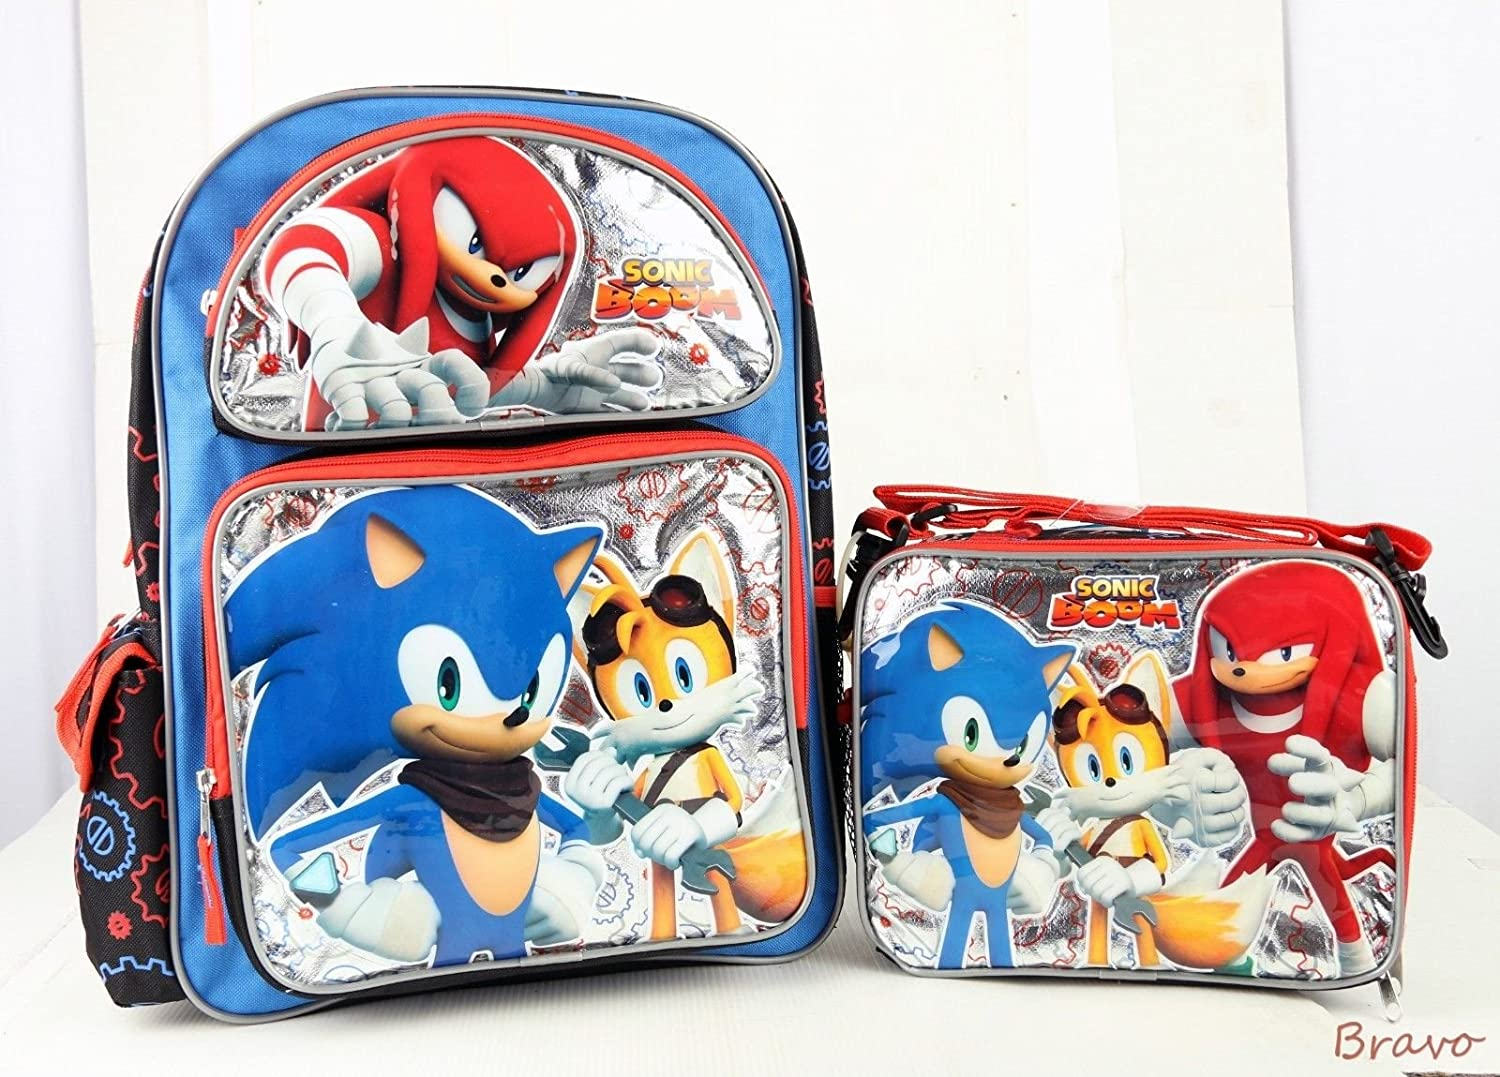 New Sonic Boom Backpack Blau & rot 16 Large School BAG & Lunch Bag Set by Sonic